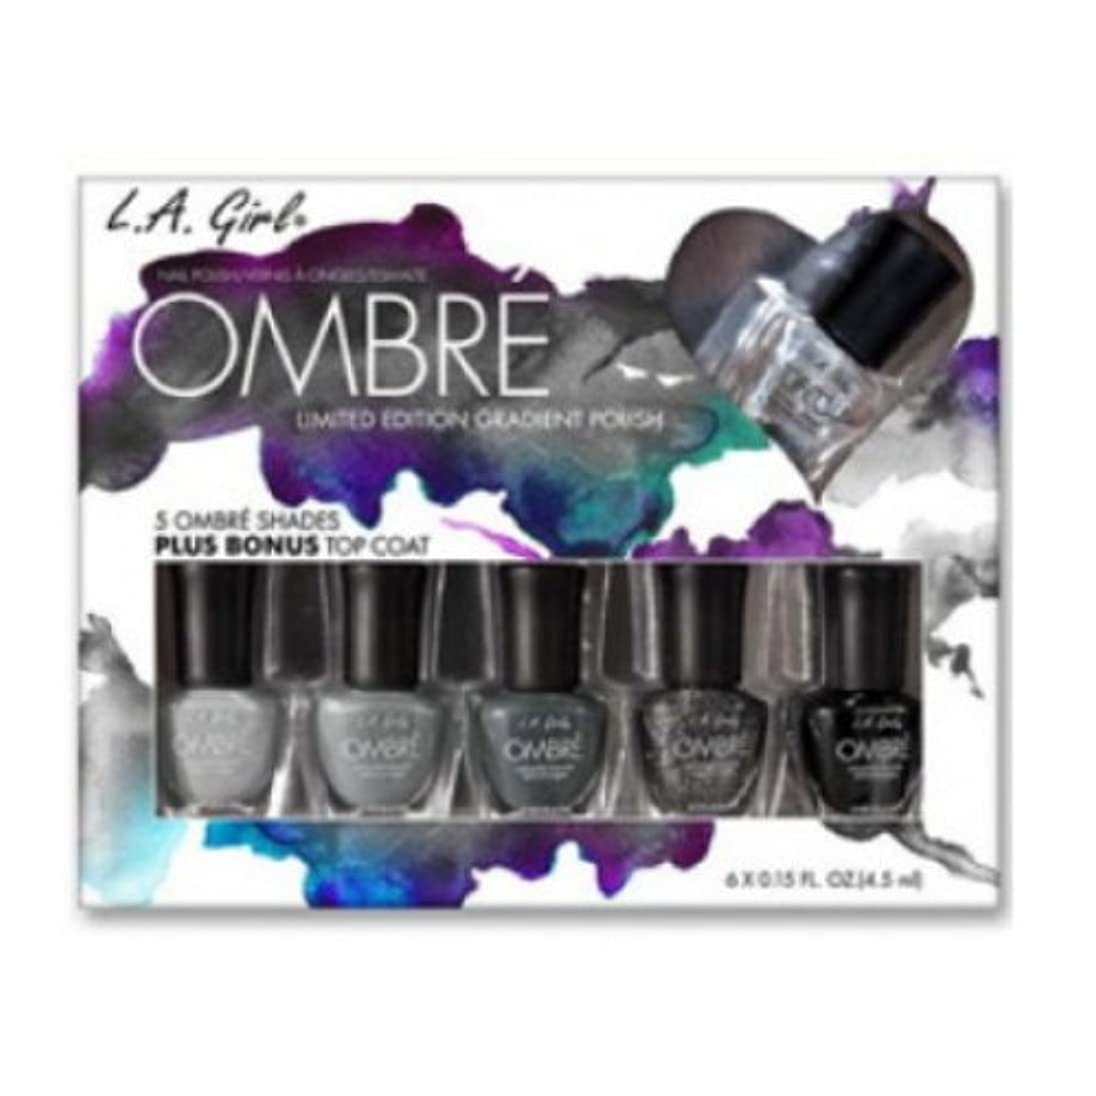 つまらない乱用酔って(3 Pack) L.A. GIRL Ombre Limited Edition Gradient Polish Set - Midnite (並行輸入品)